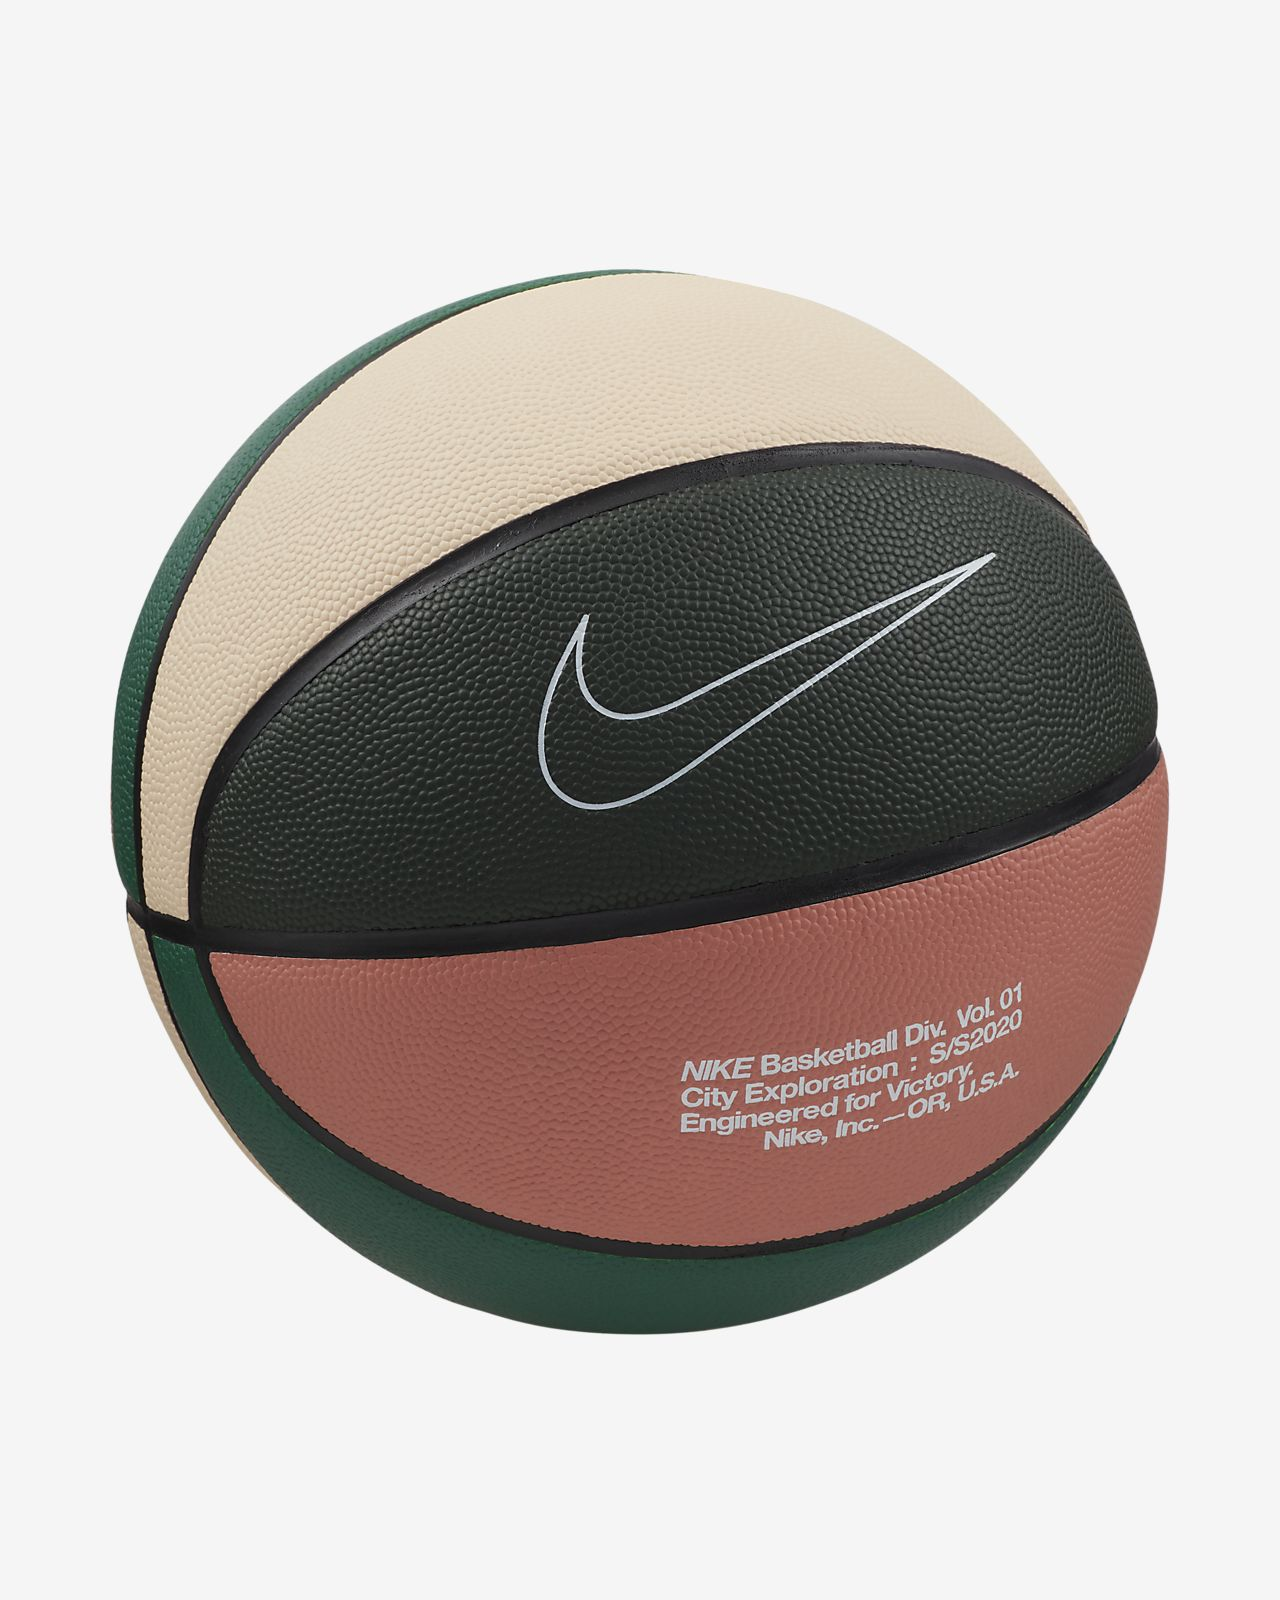 Ballon de basketball Nike City Exploration (Atlanta)